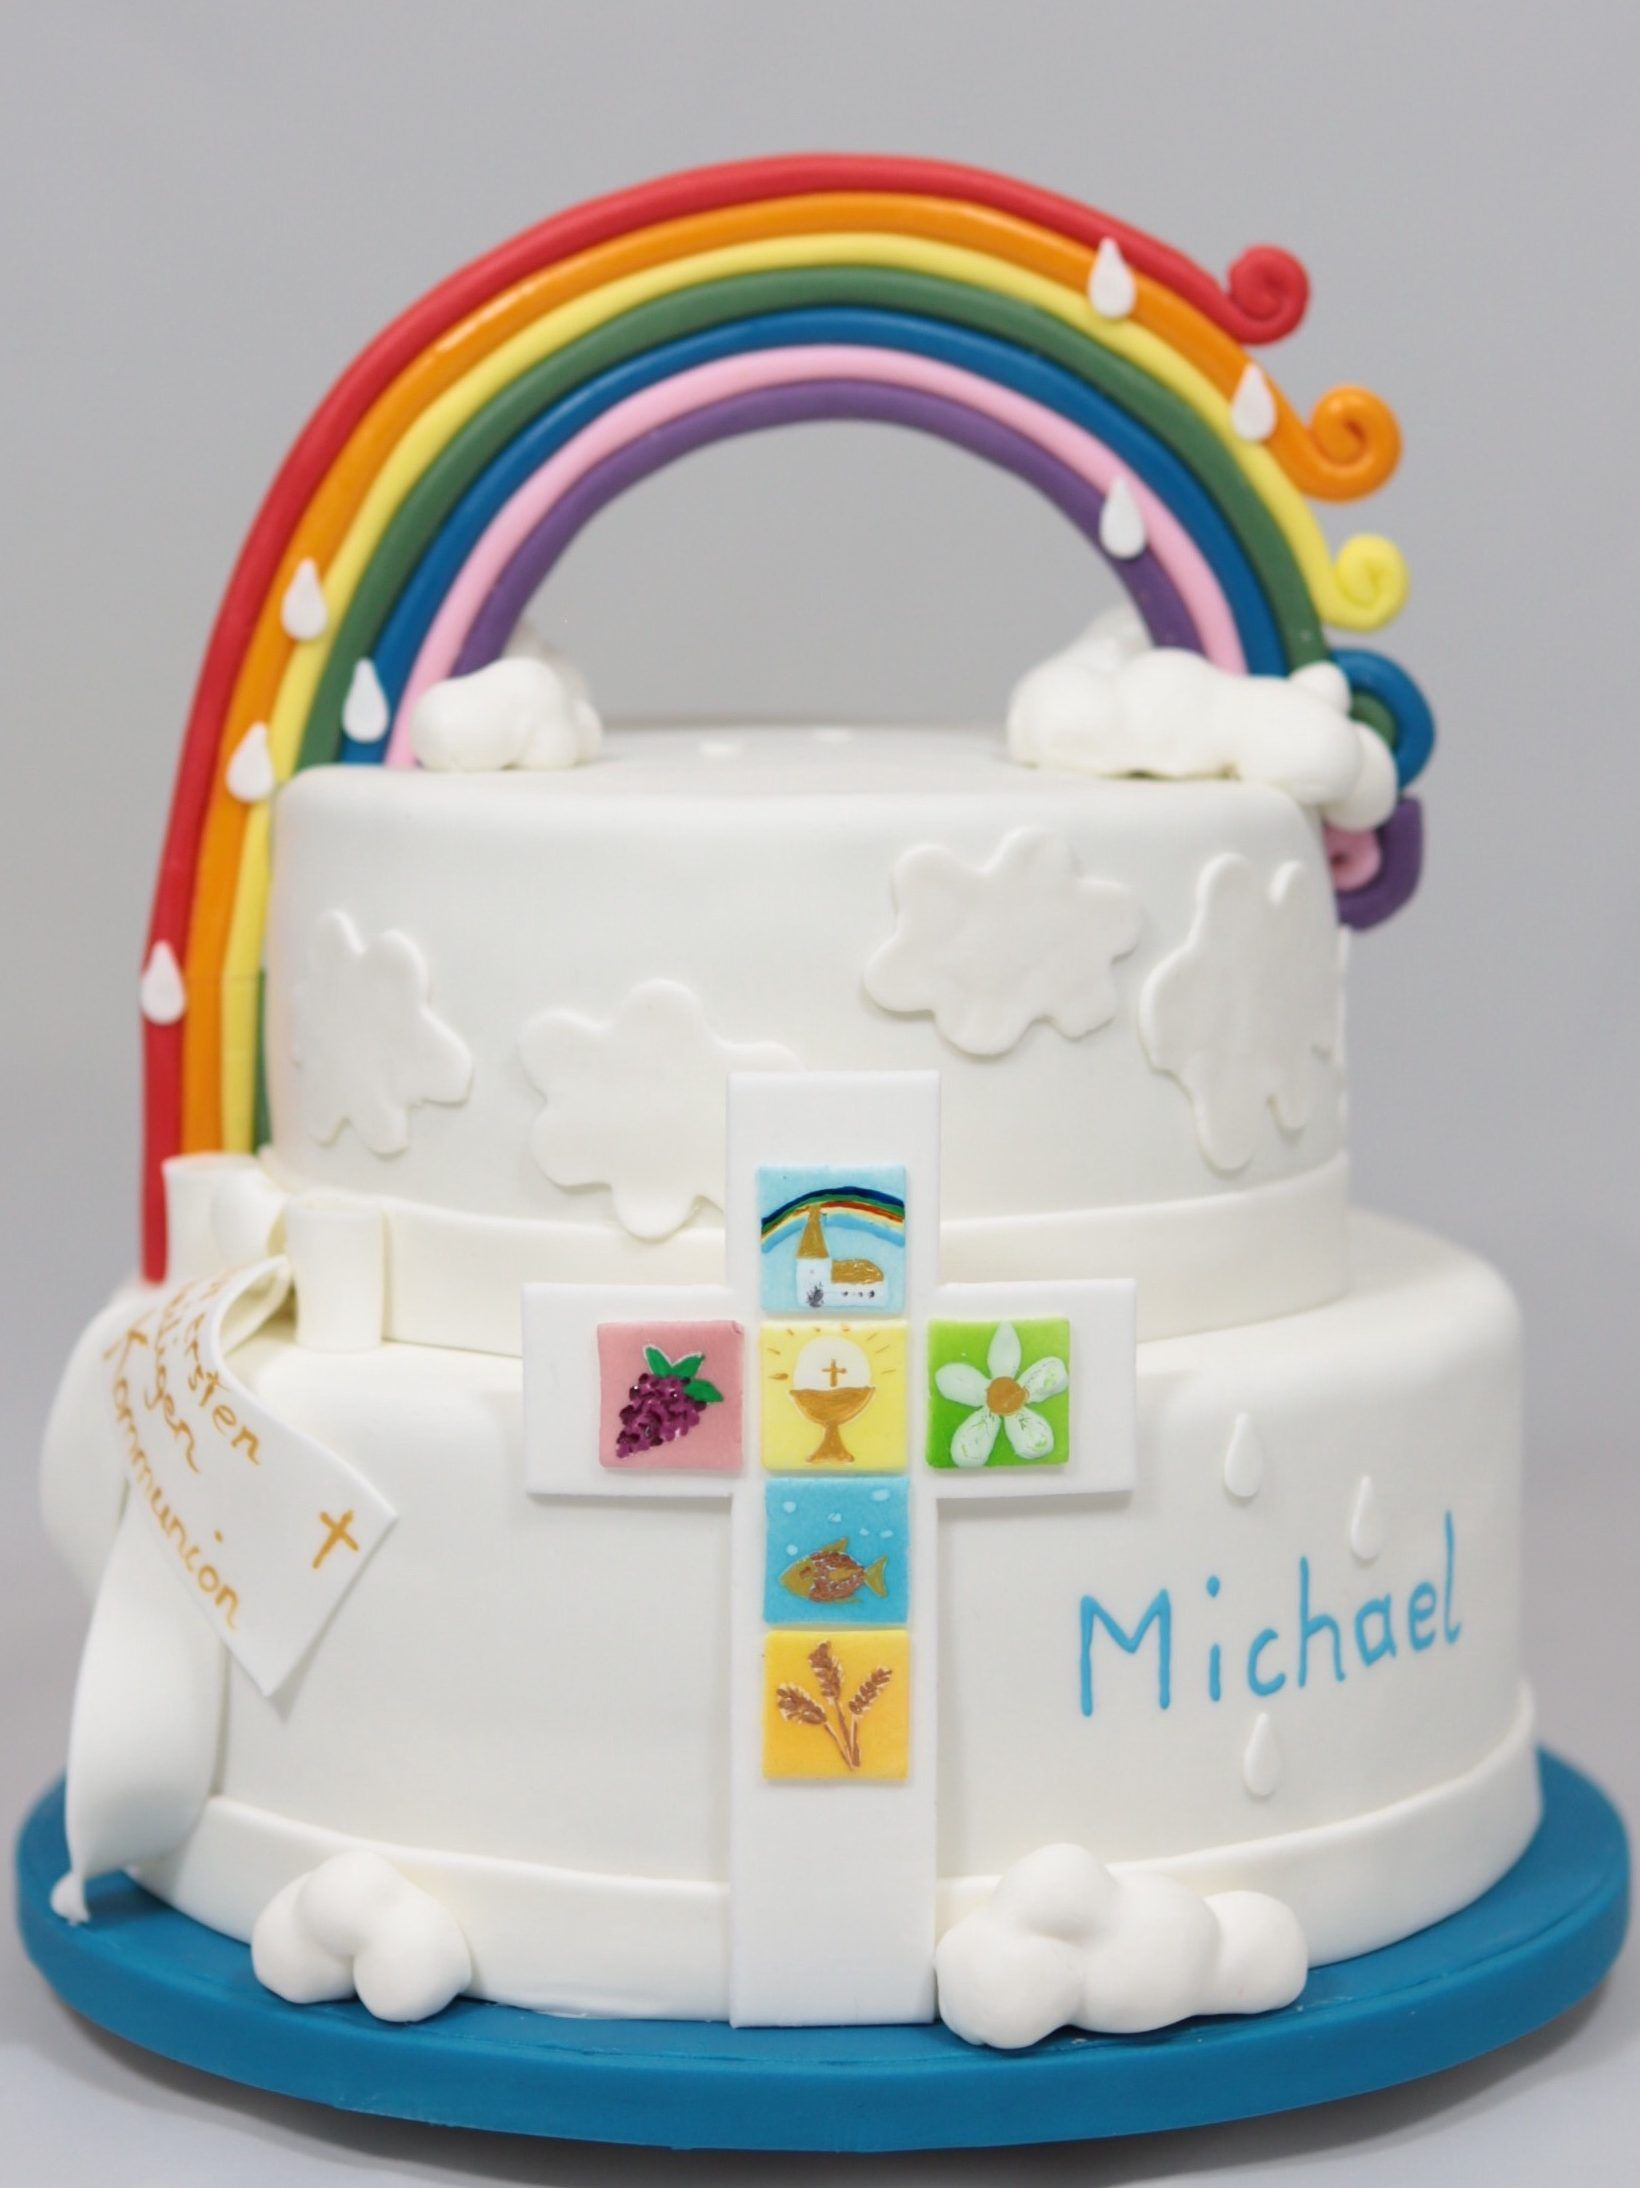 regenbogen rainbow torte cake first communion erstkommunion torten zur erstkommunion in 2018. Black Bedroom Furniture Sets. Home Design Ideas